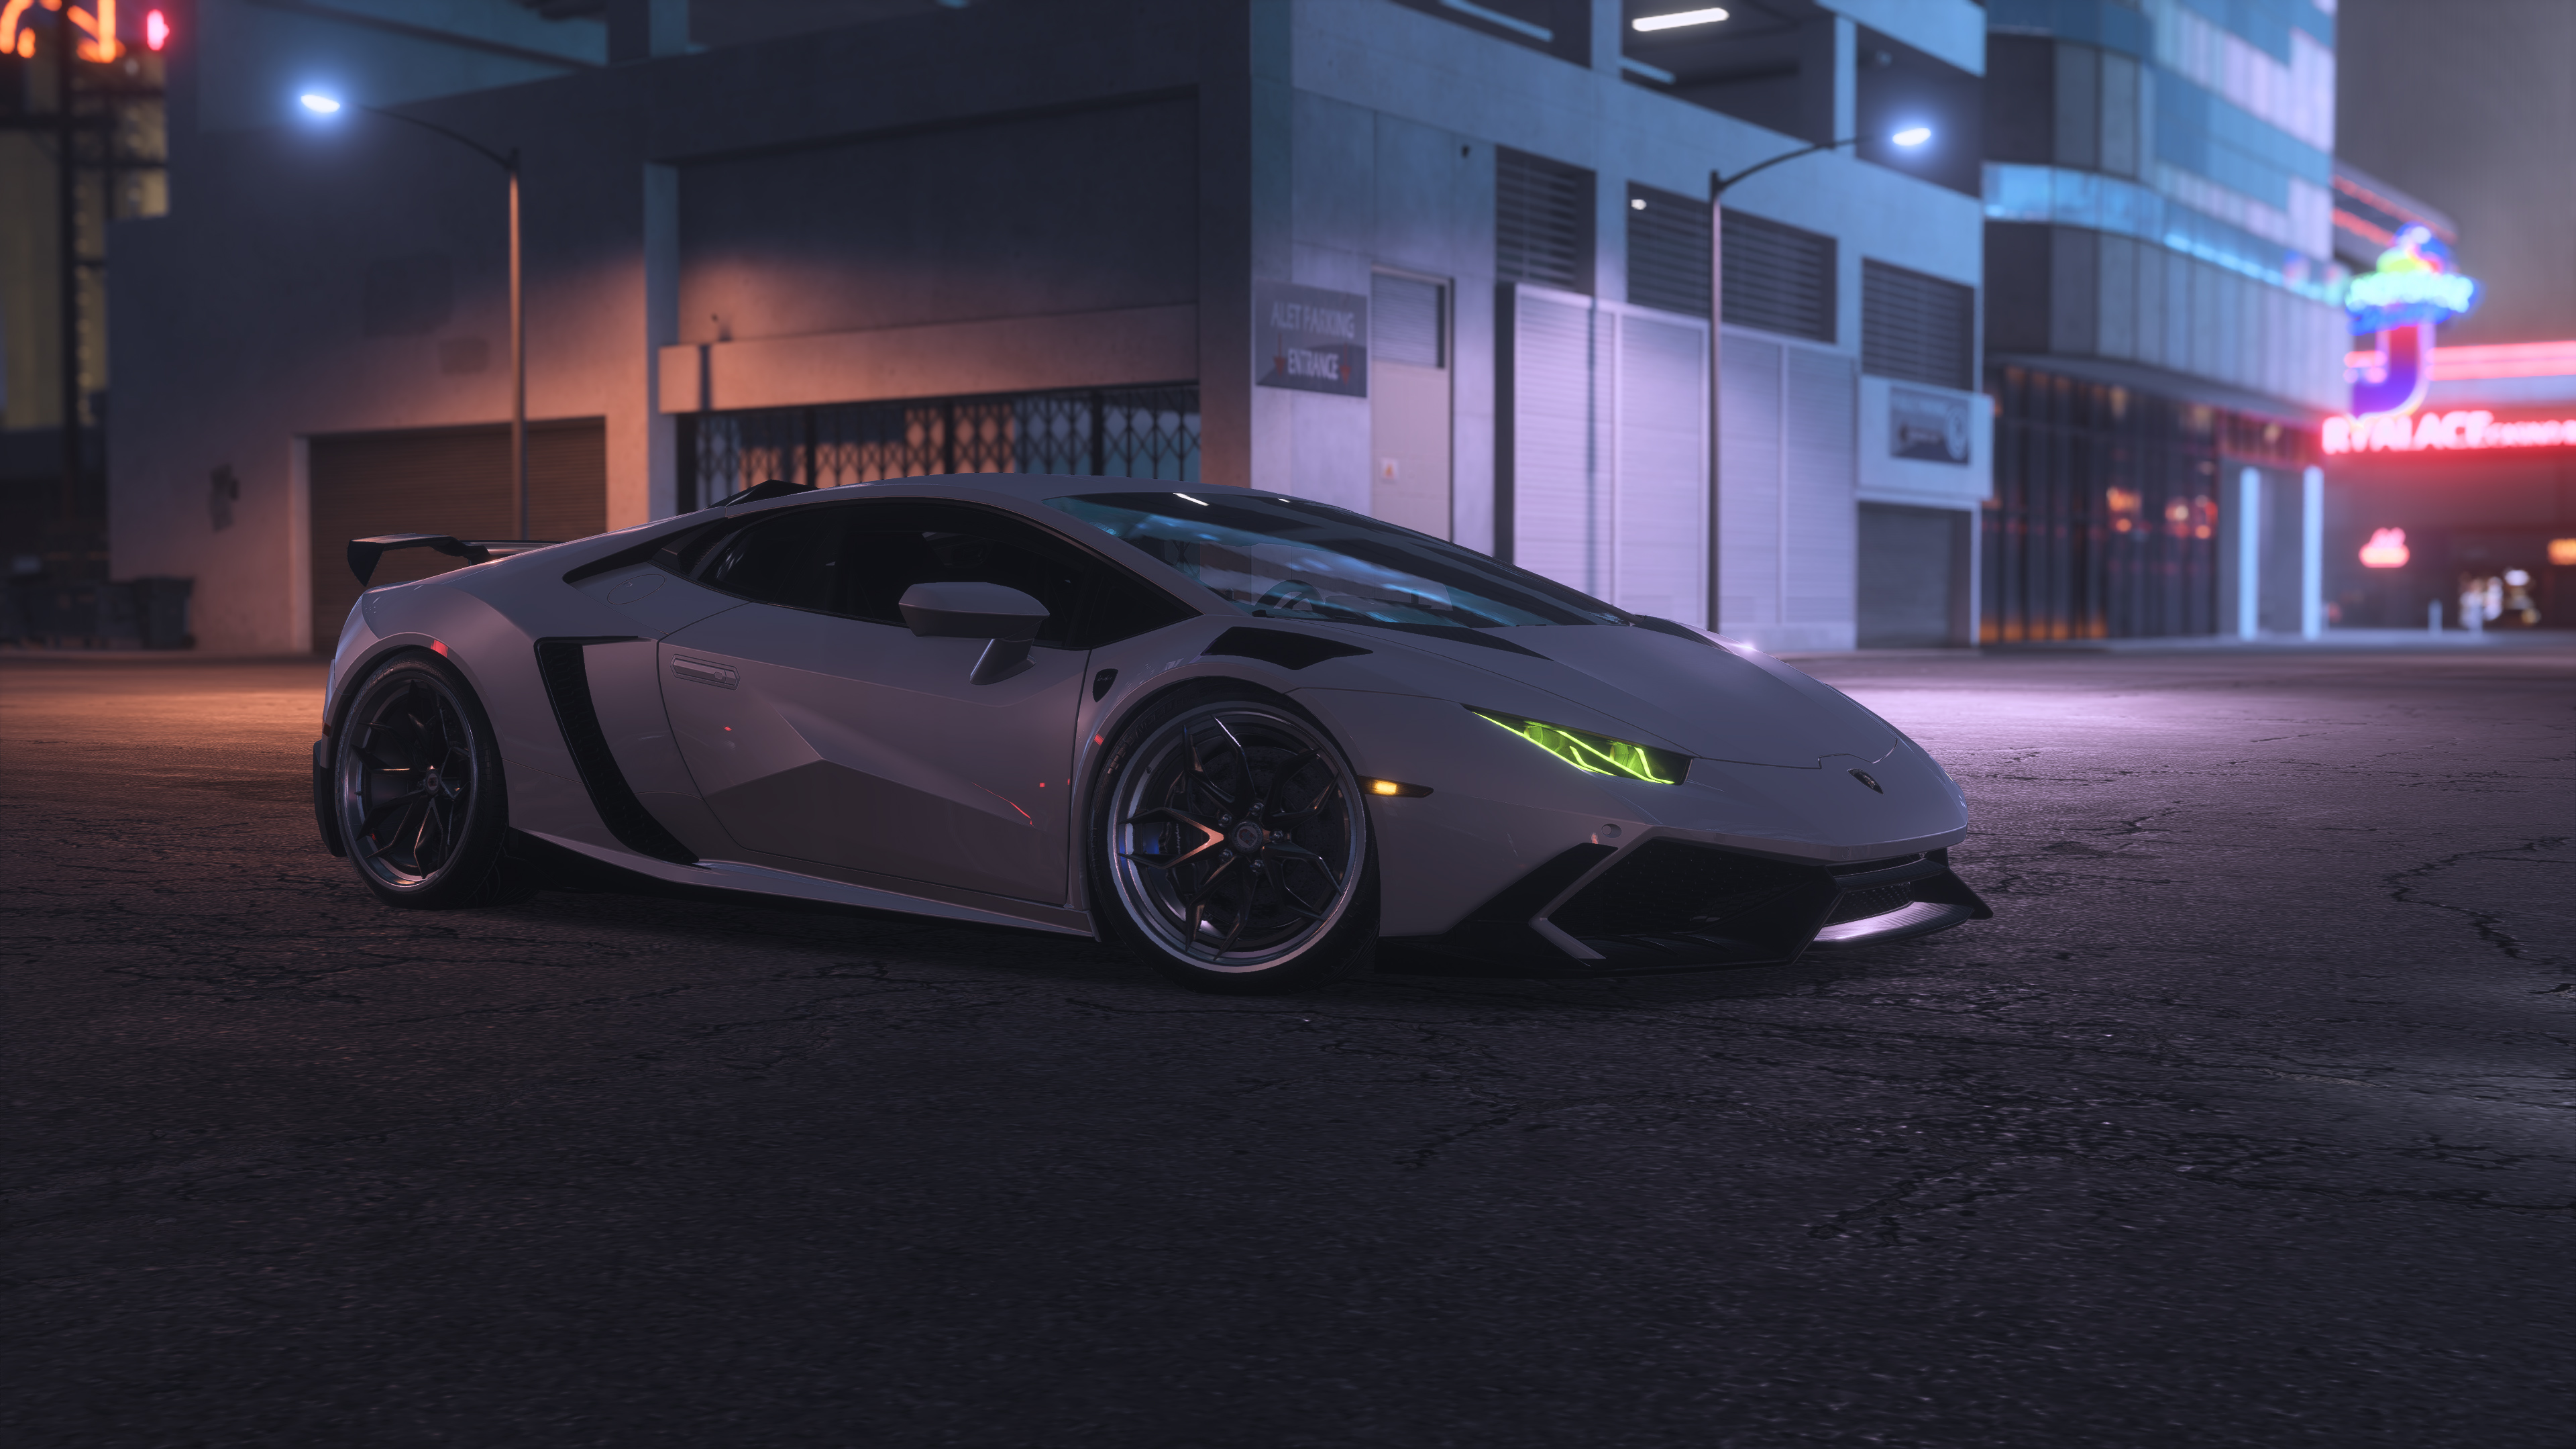 Need For Speed Payback Wallpaper: Need For Speed Payback Lamborghini Hurcacan 4k, HD Games